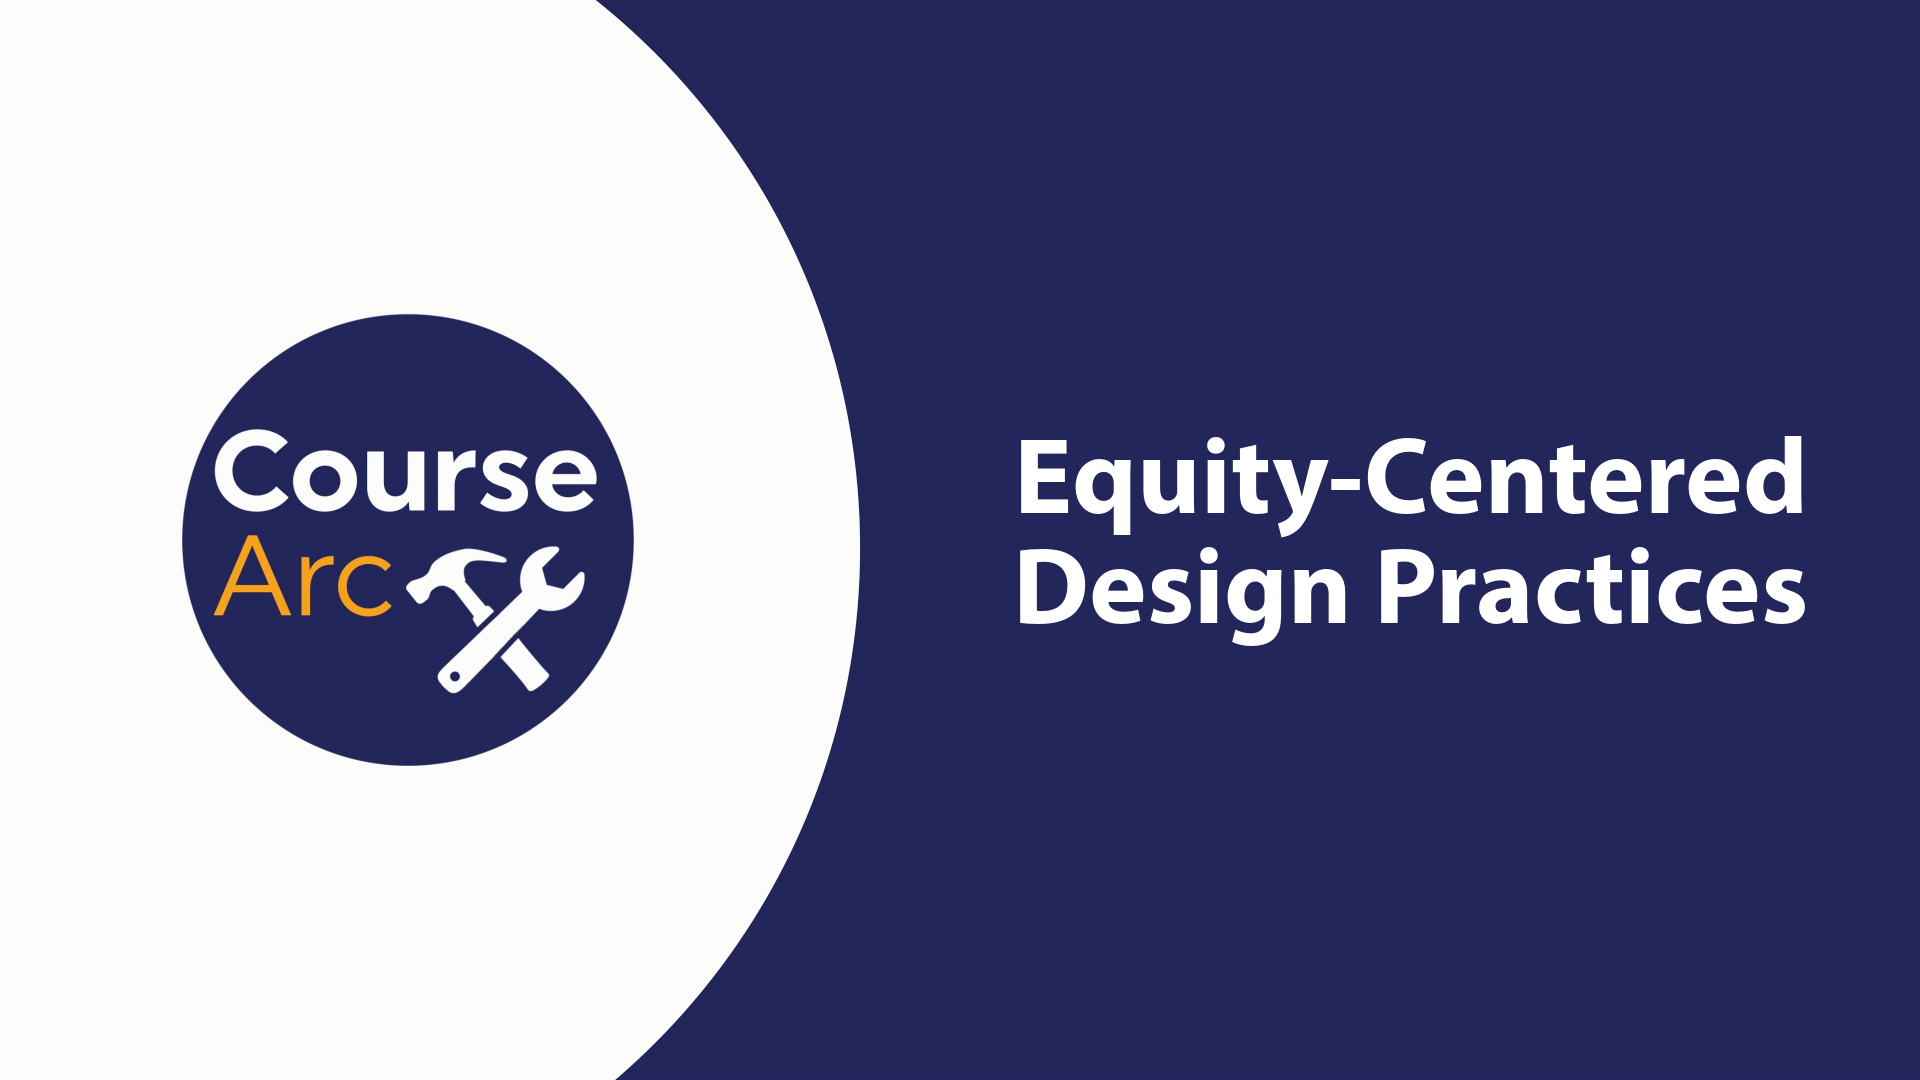 Equity-Centered Design Practices